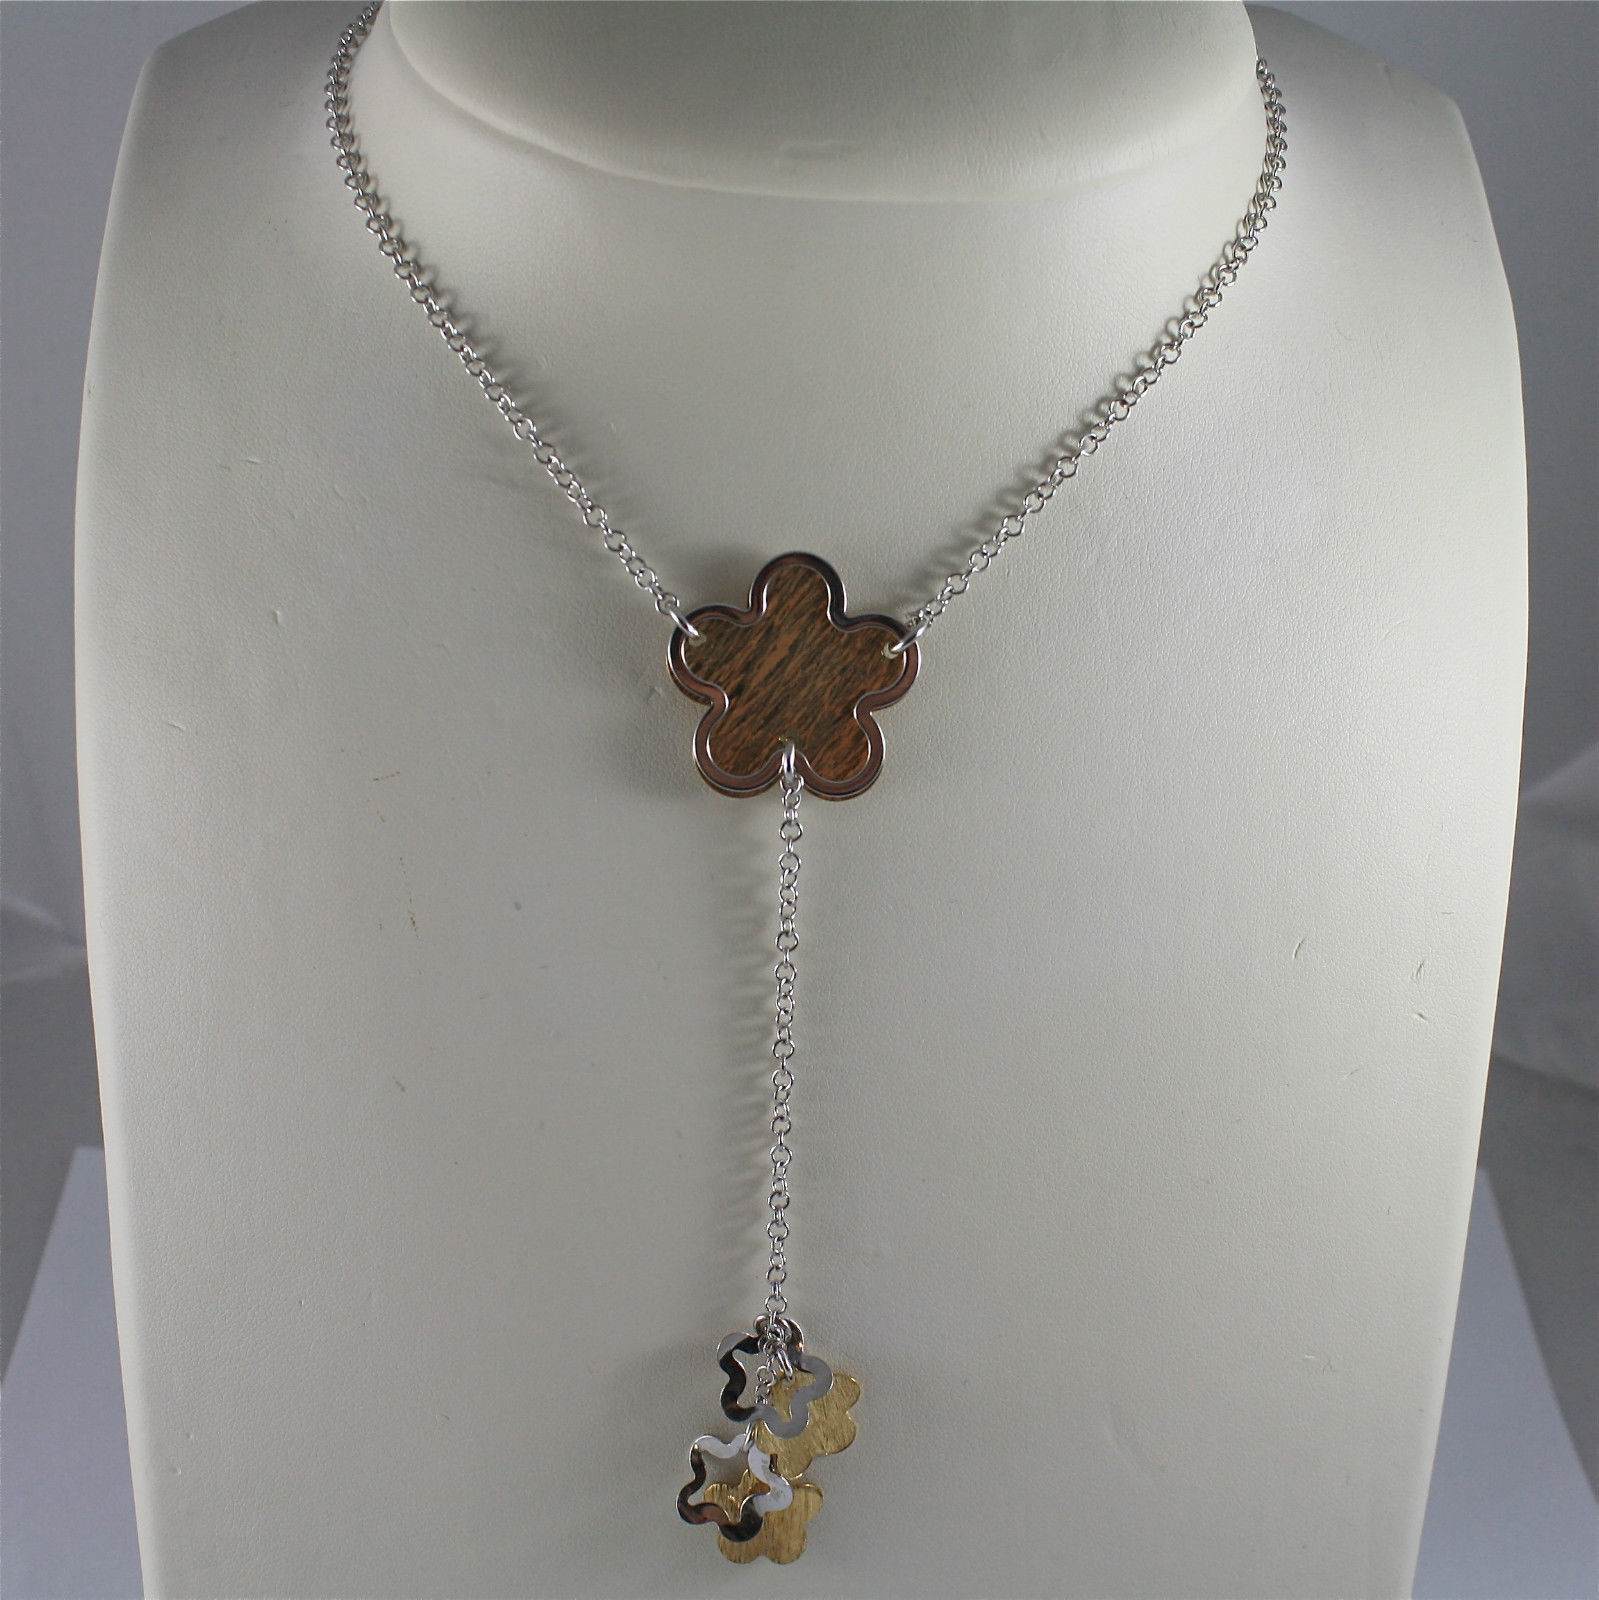 .925 SILVER RHODIUM AND GOLD PLATED SCARF NECKLACE, 17,32 In, FLOWERS PENDANT.